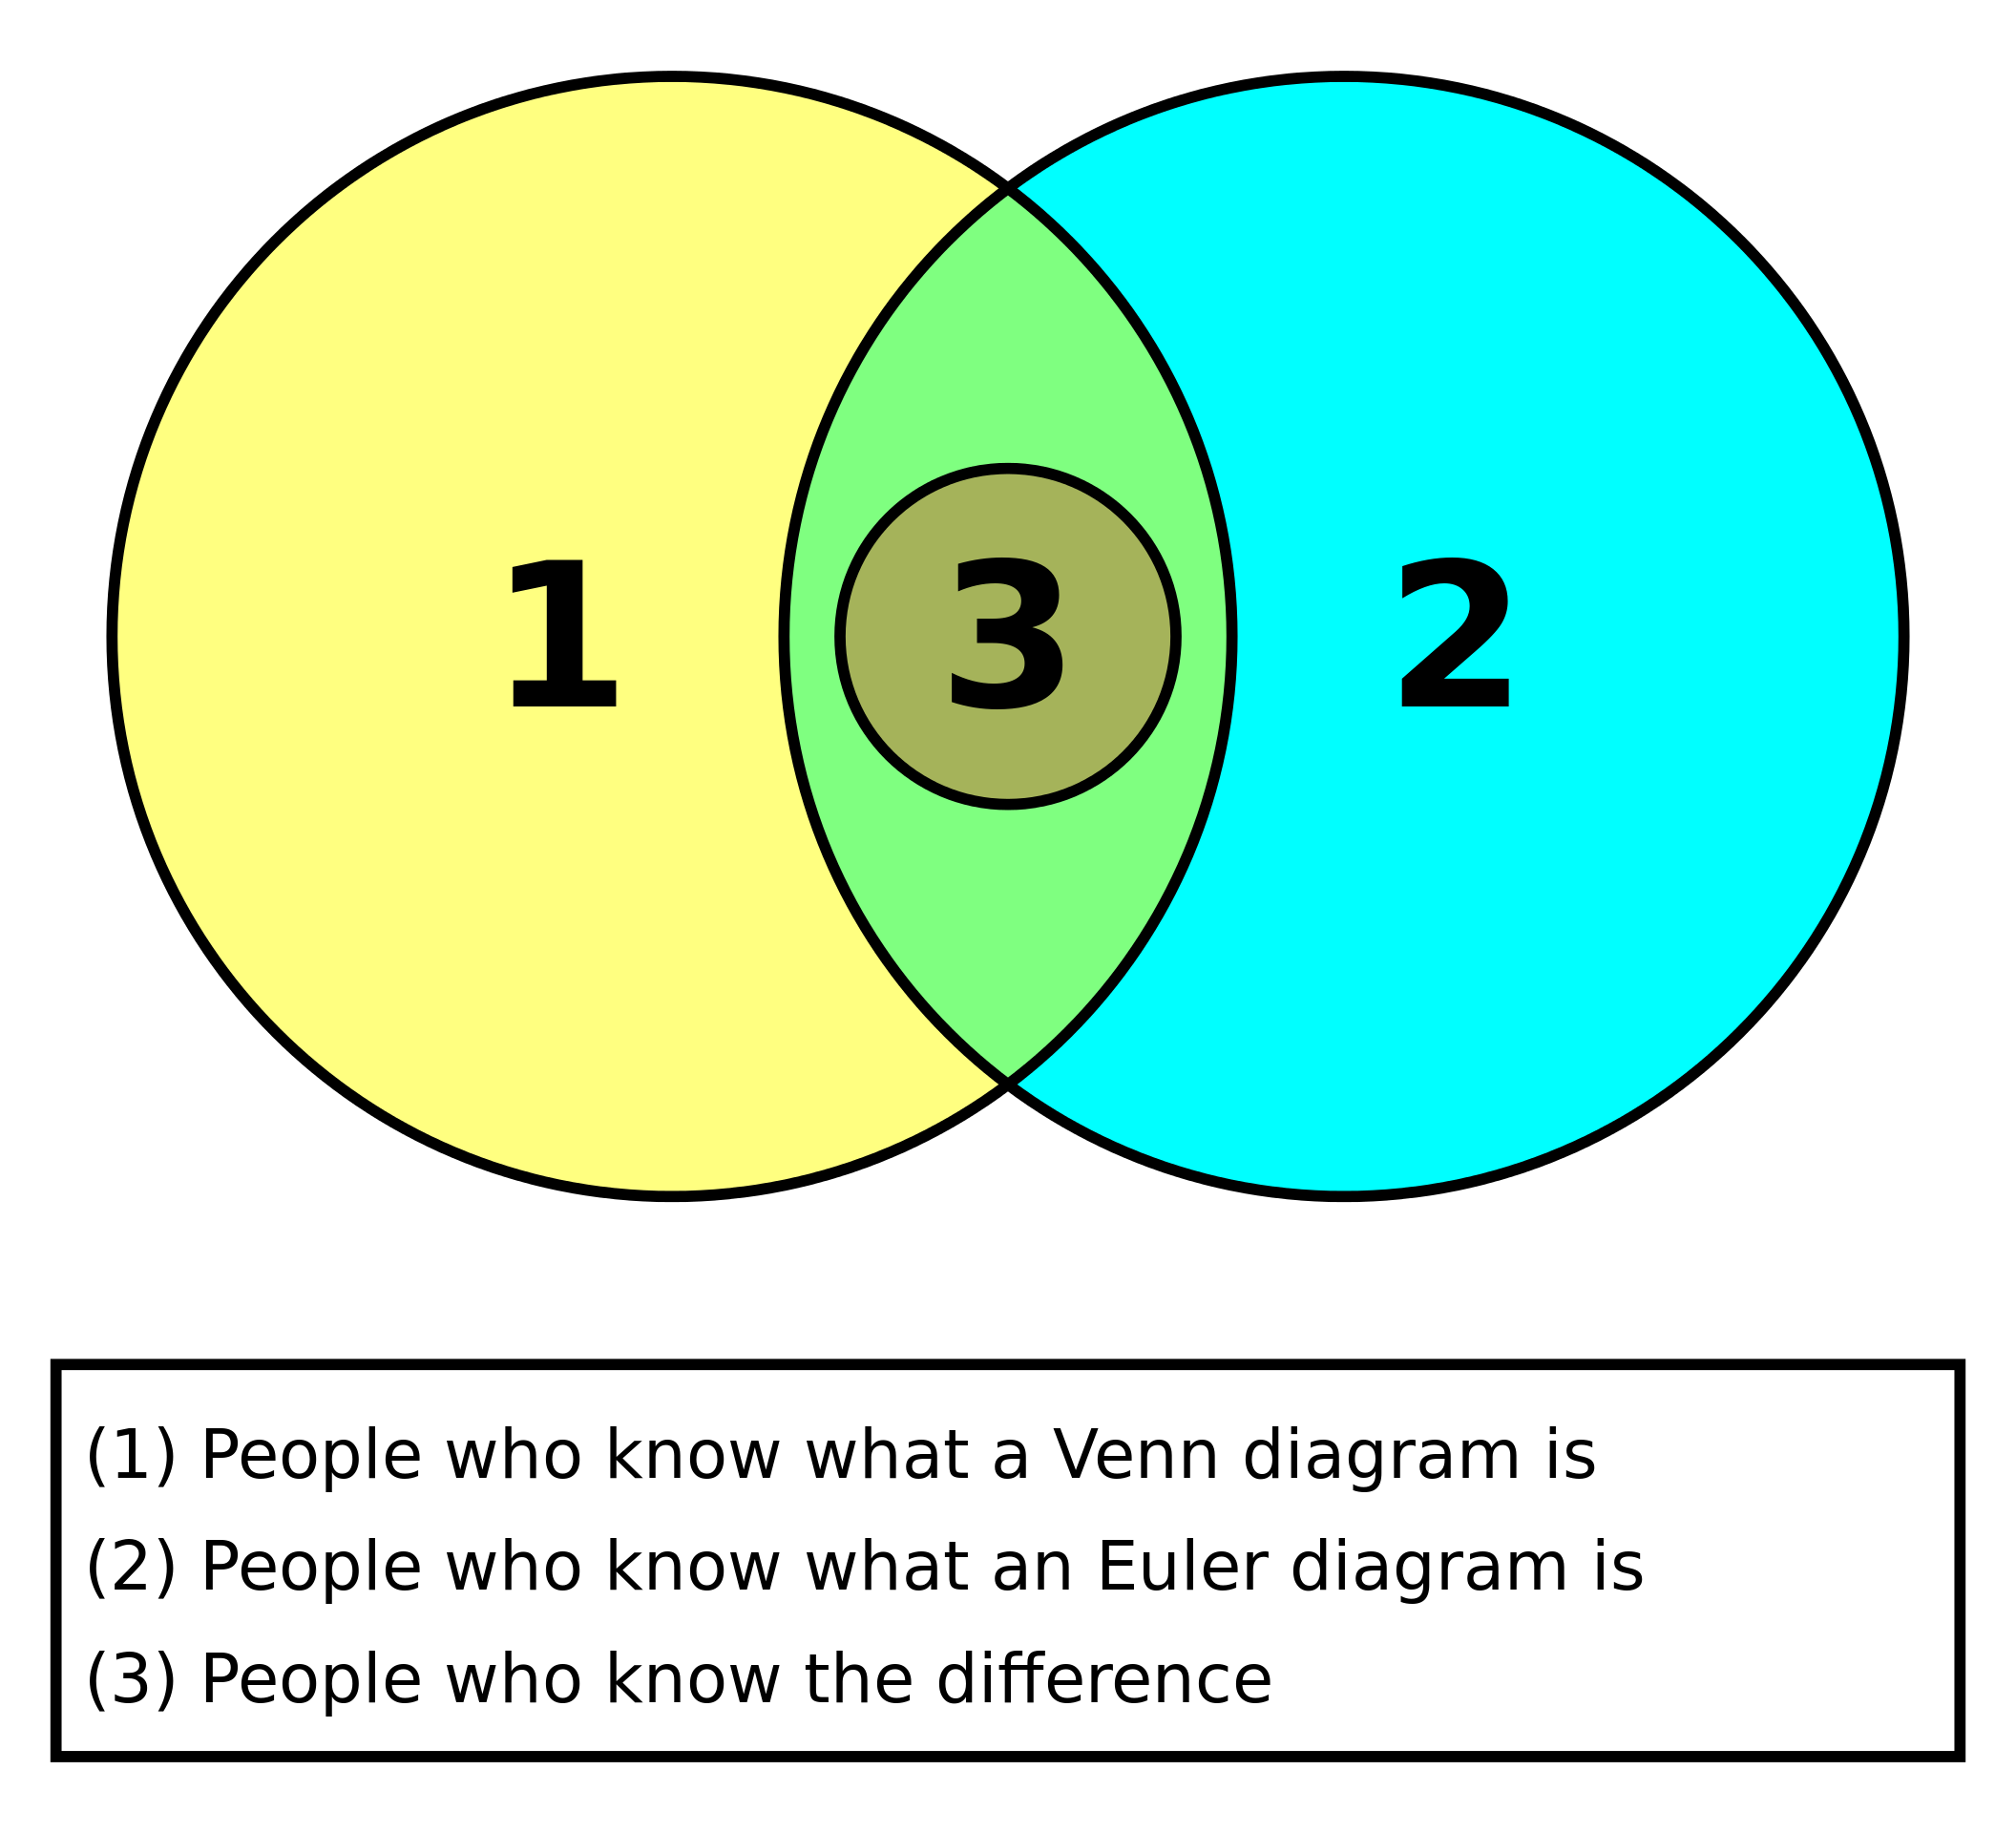 Euler diagram wikipedia the free encyclopedia venn diagrams euler diagram pooptronica